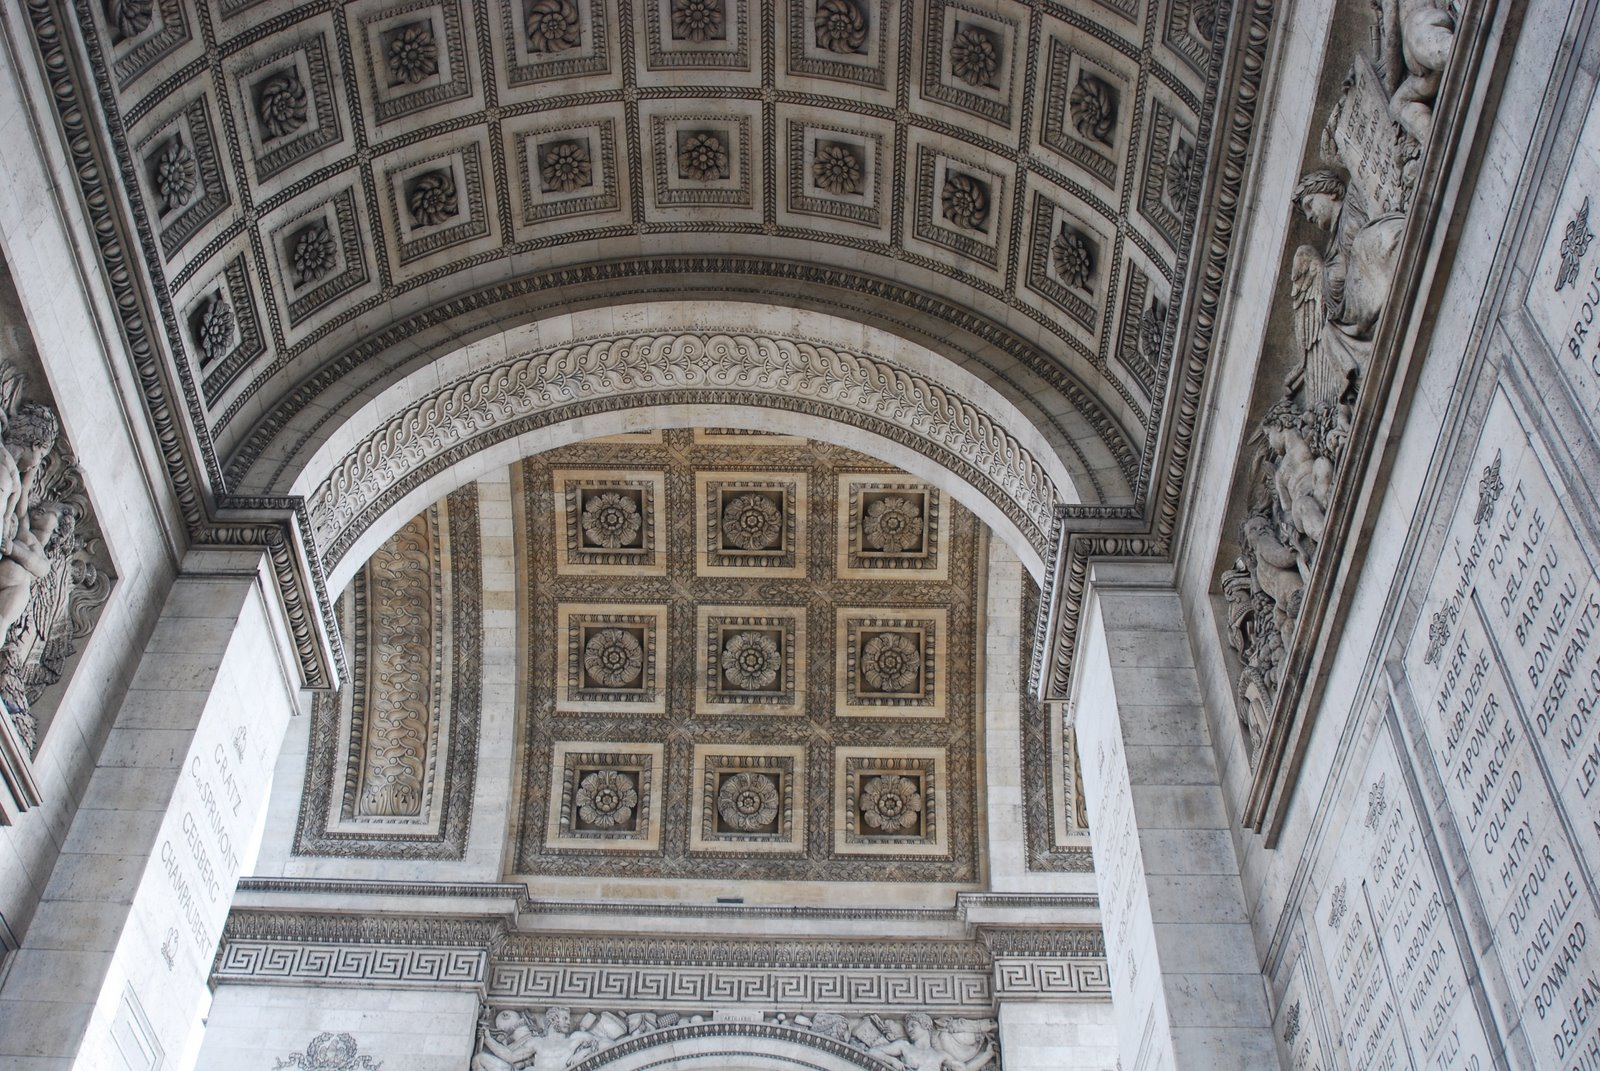 Under the Arc of Triumph